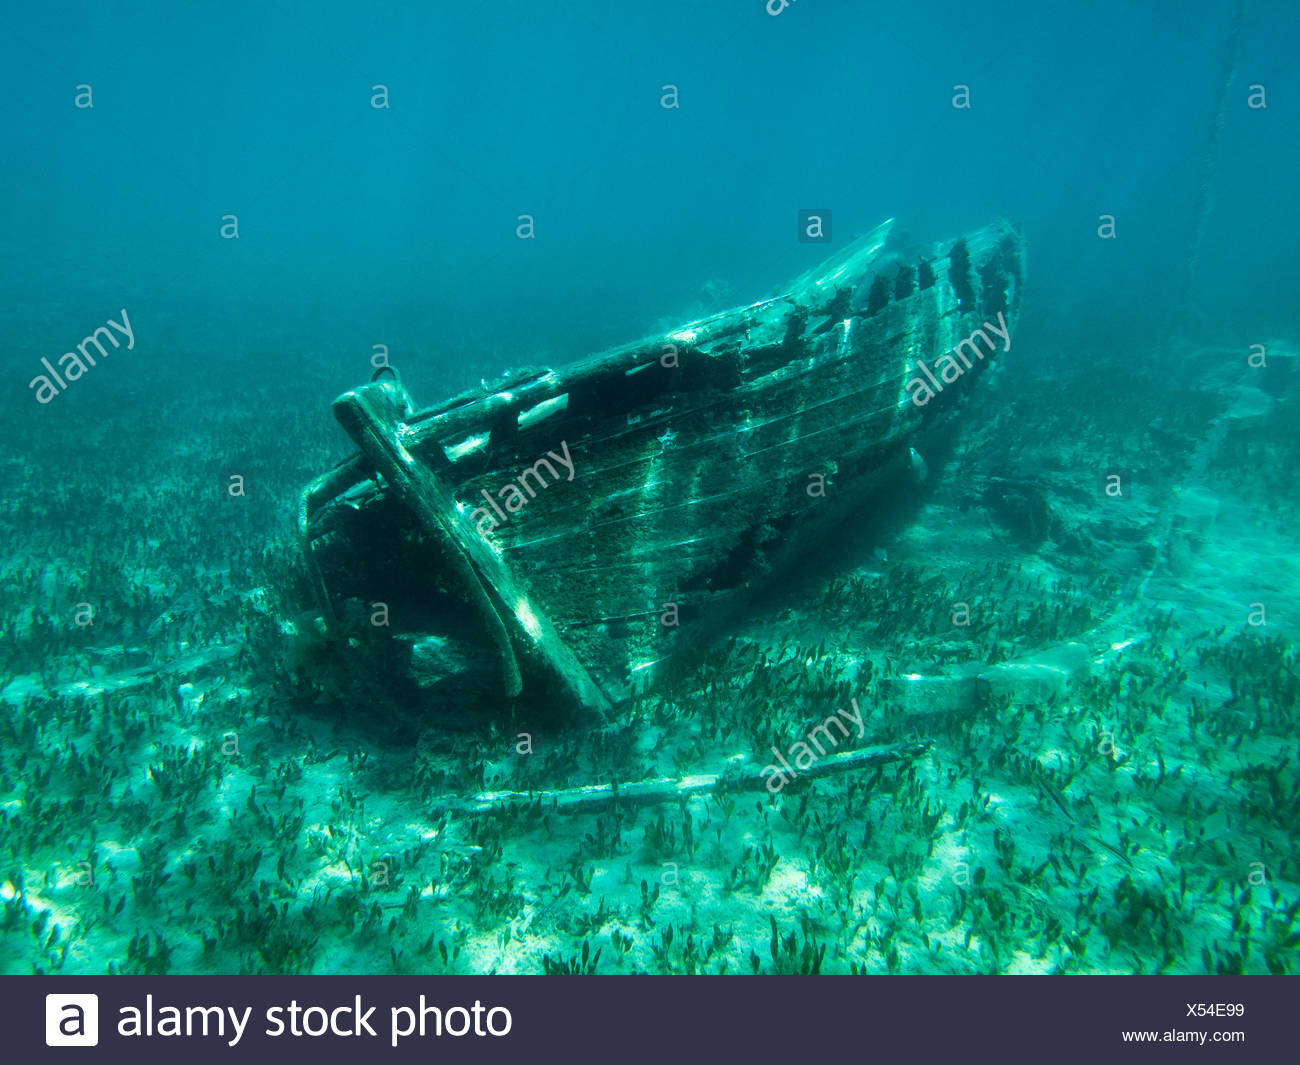 View of an abandoned sunken boat in water - Stock Image